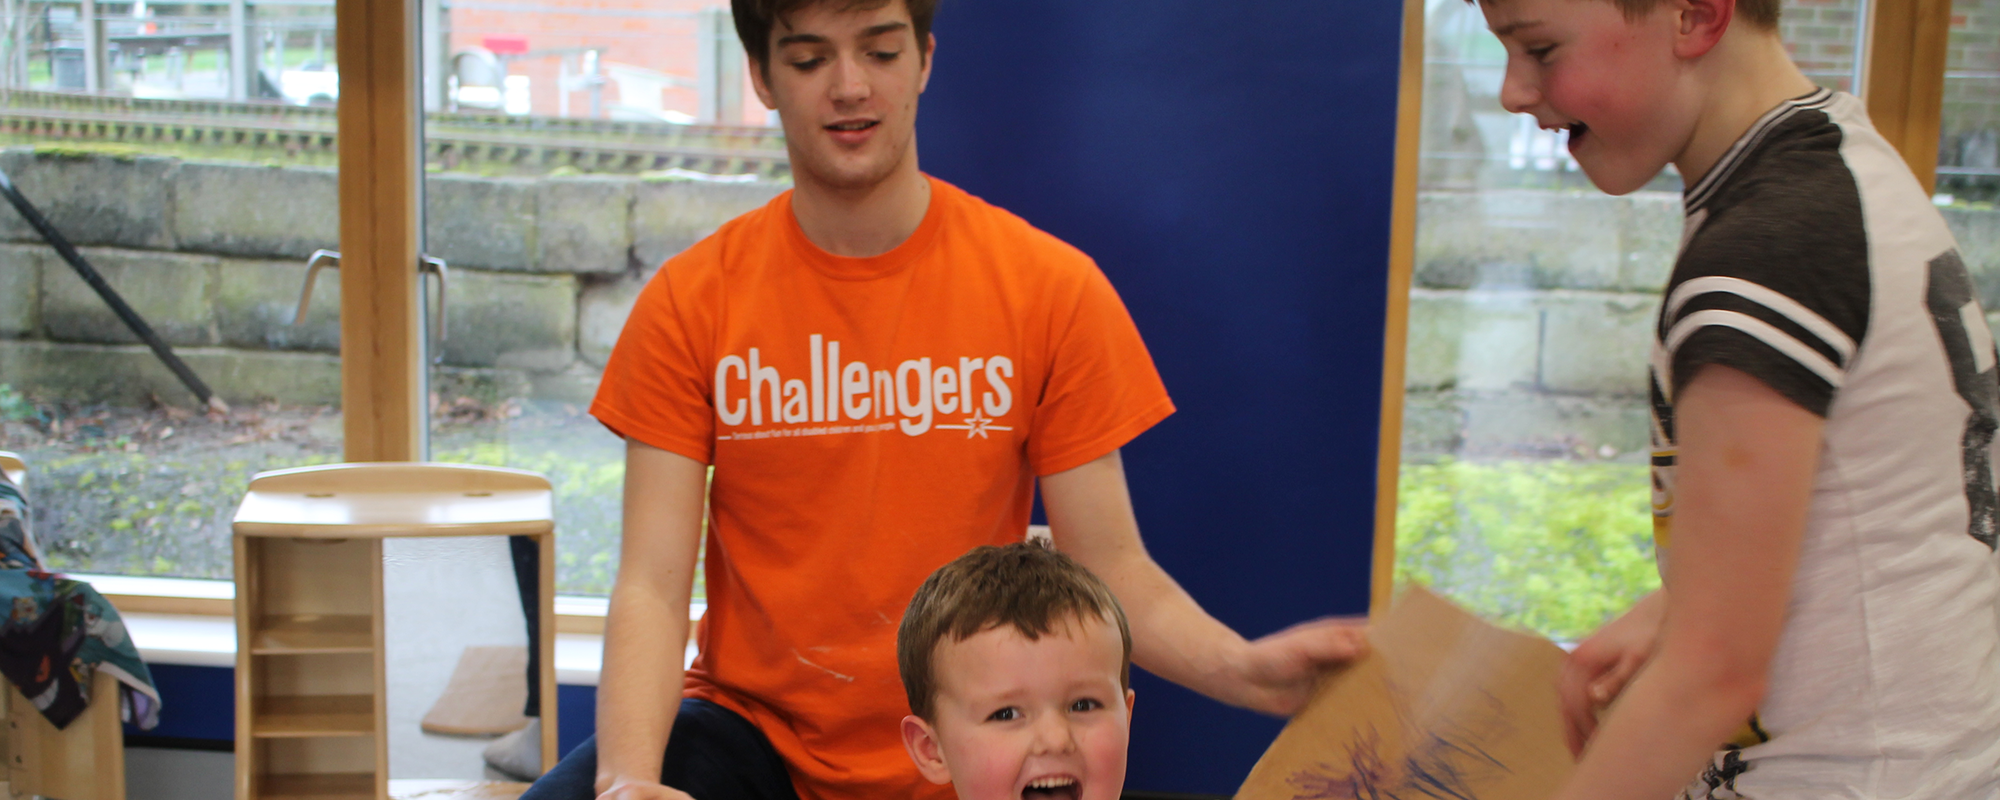 The student body has voted! Challengers is this year's RAG Charity of the Year. Challengers is all about delivering inclusive fun for disabled children and young people aged 2-25 years old.